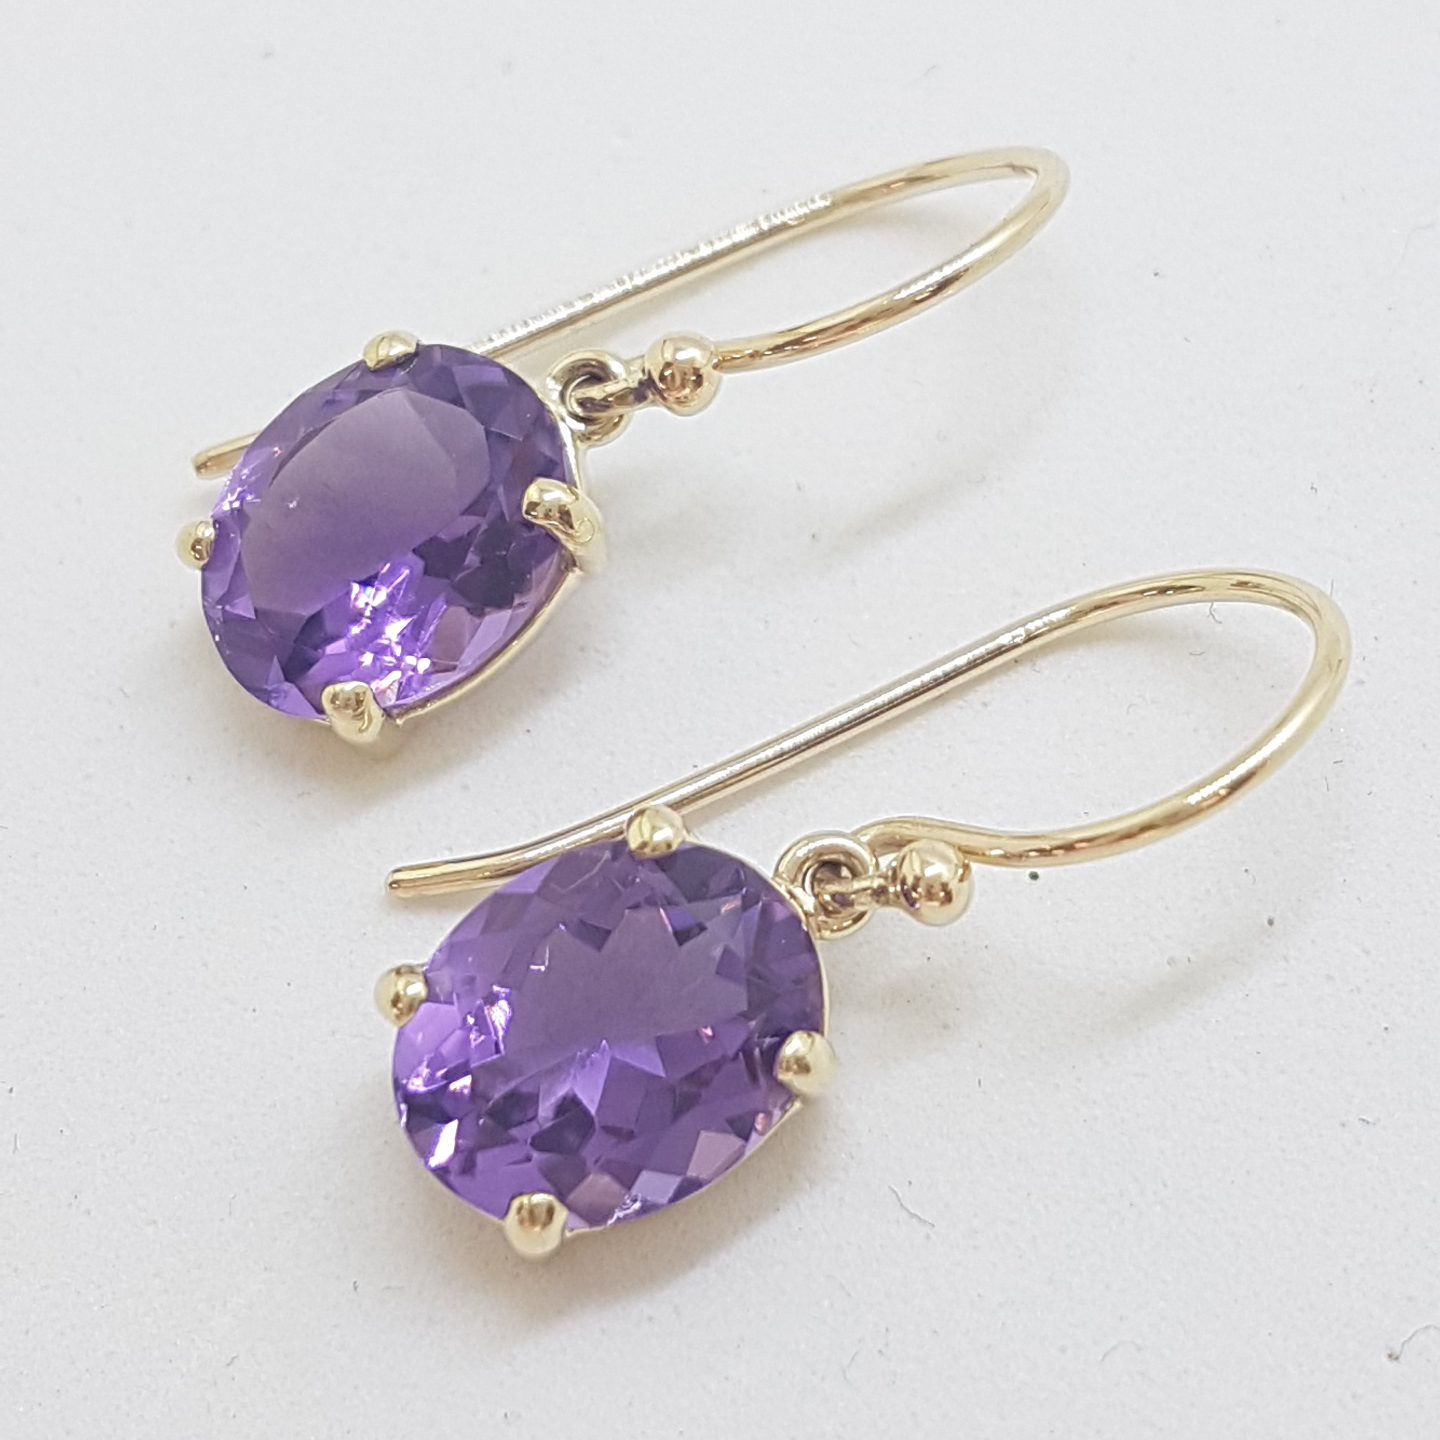 9ct Yellow Gold Oval Claw Set Amethyst Drop Earrings